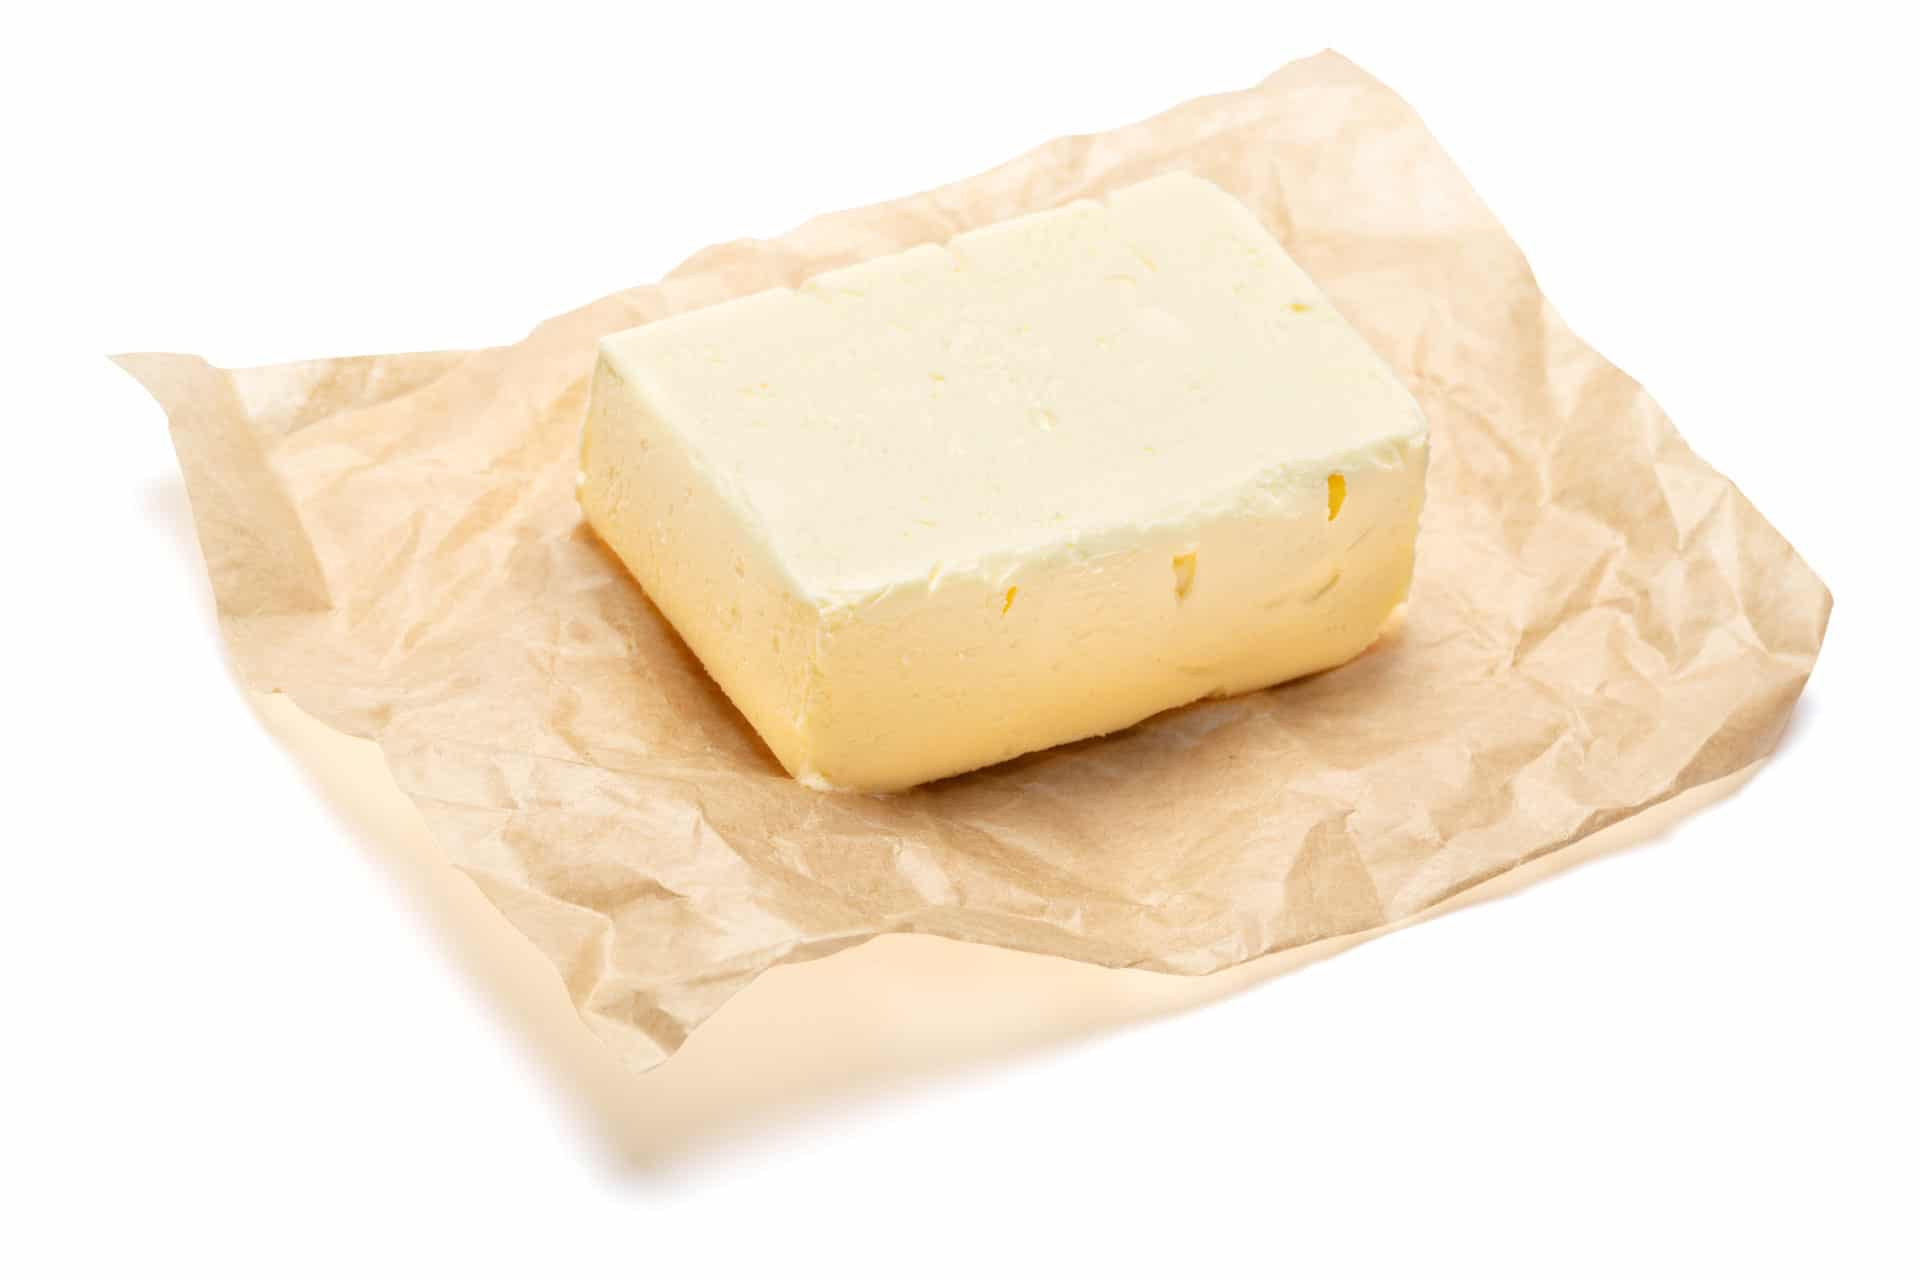 Olfood formaggio